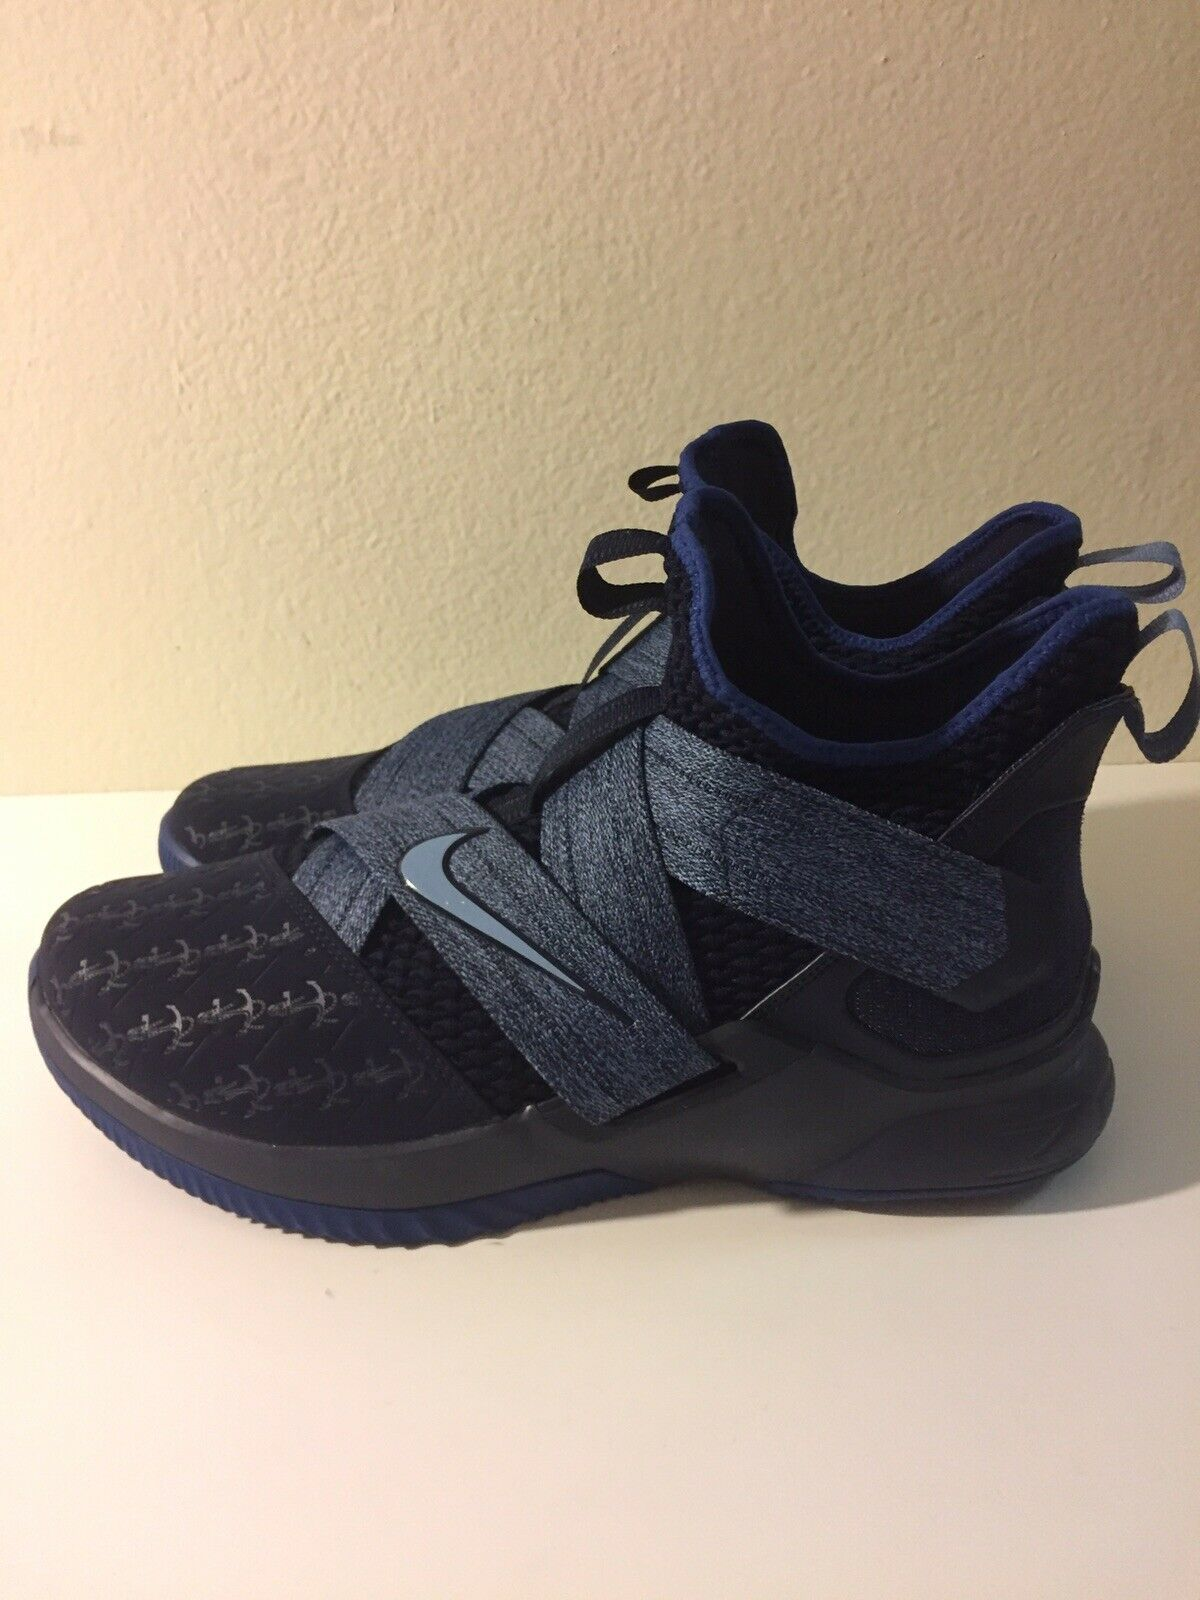 NIKE LEBRON SOLDIER XII MENS SHOE'S [SIZE 11.5] BLACKENED blueeE AO2609-401